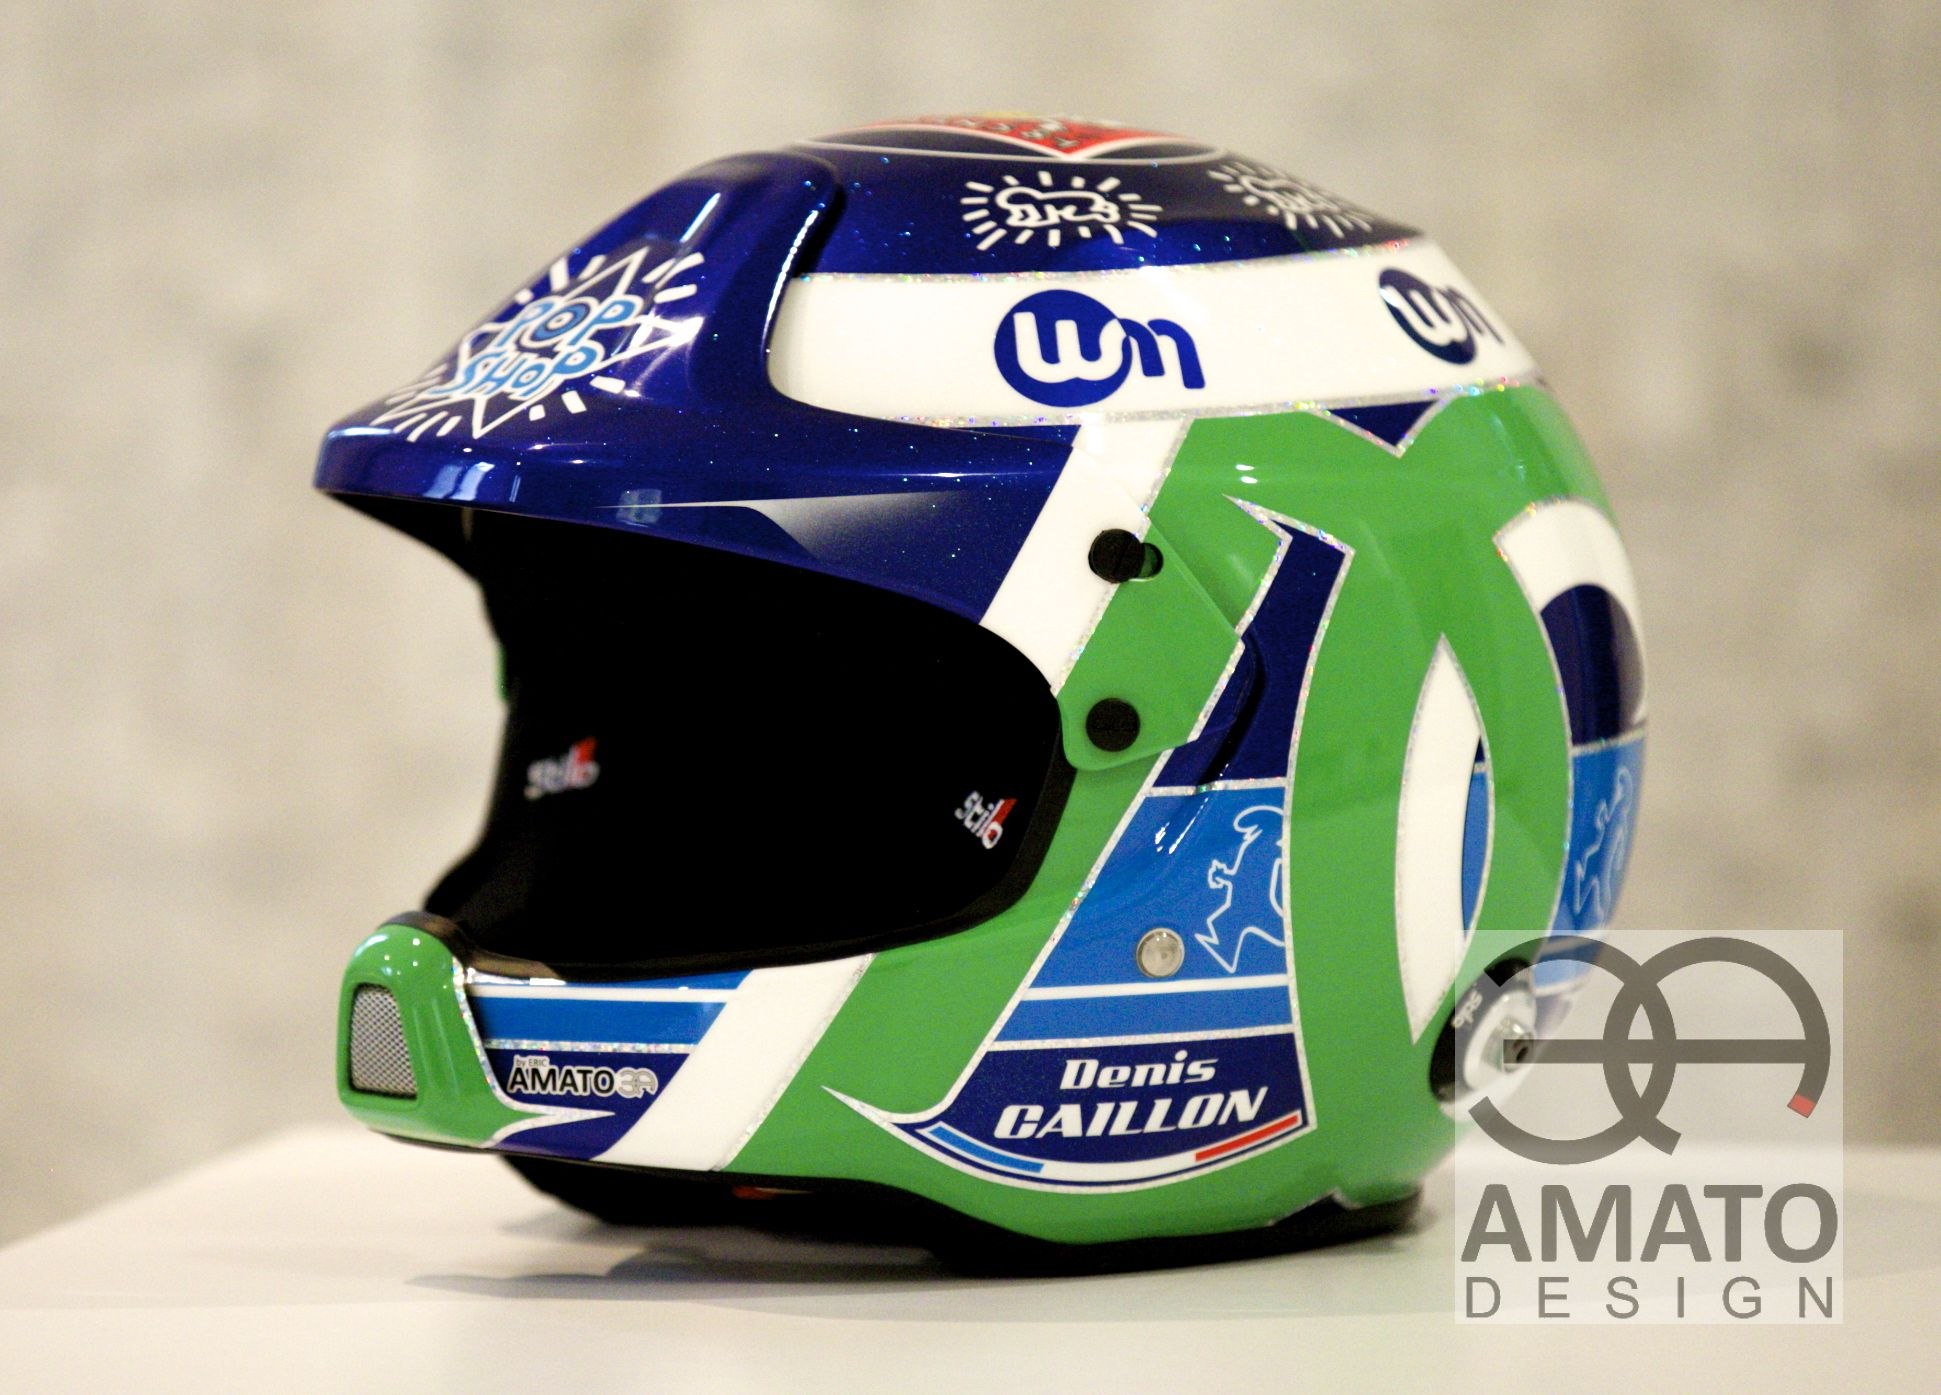 CASQUE AMATO DESIGN DENIS CAILLON